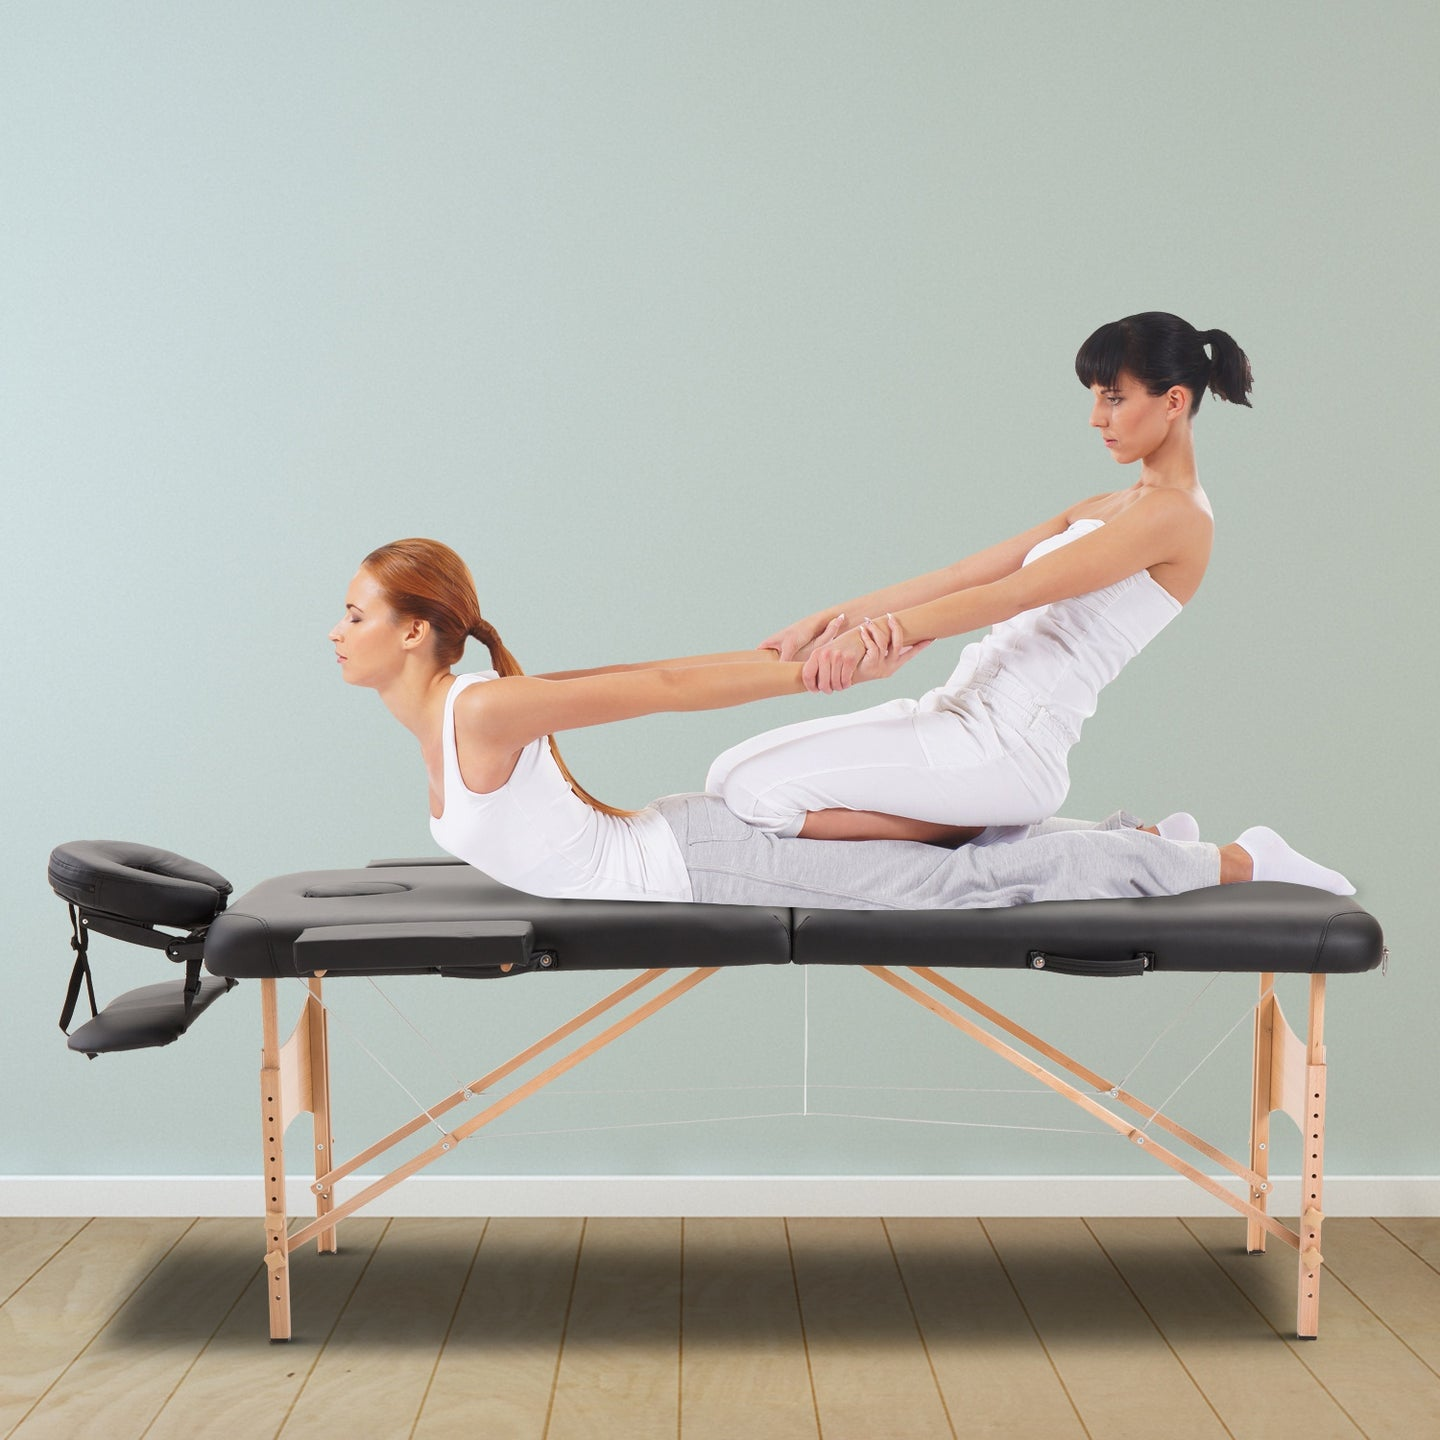 HOMCOM Portable Folding Massage Table, 2 Sections-Black